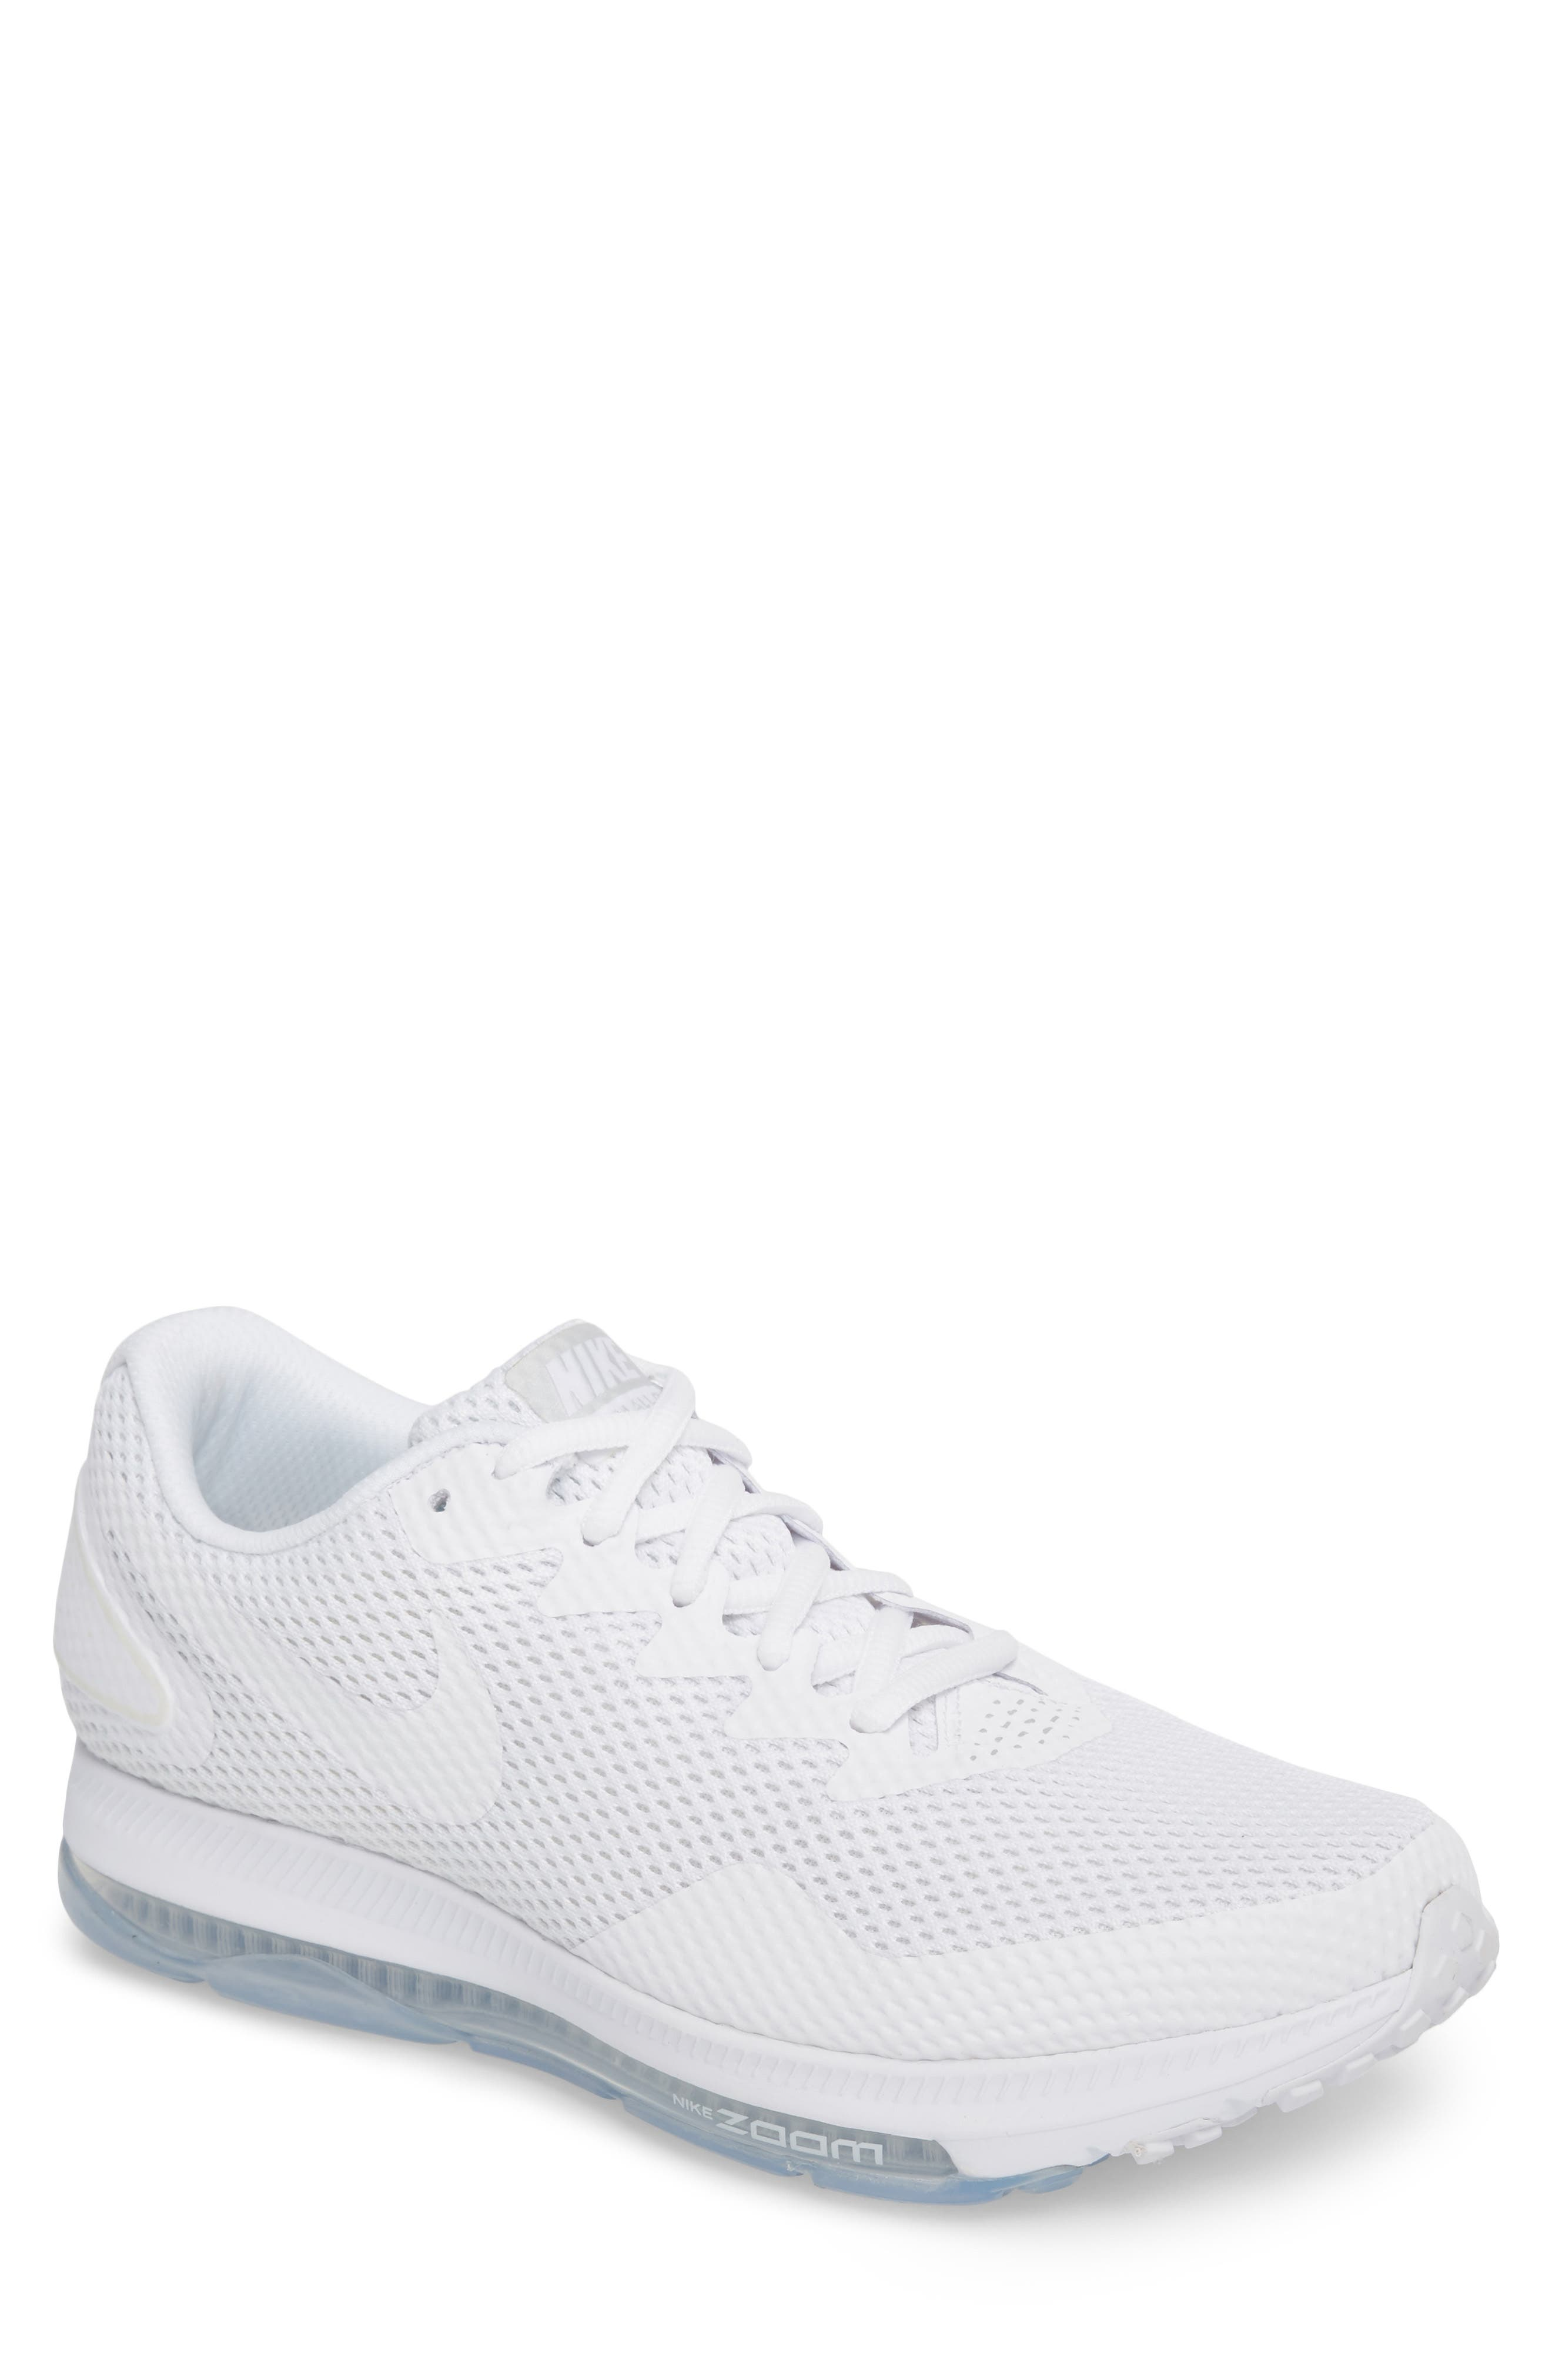 Nike Zoom All Out Low 2 Running Shoe (Men)